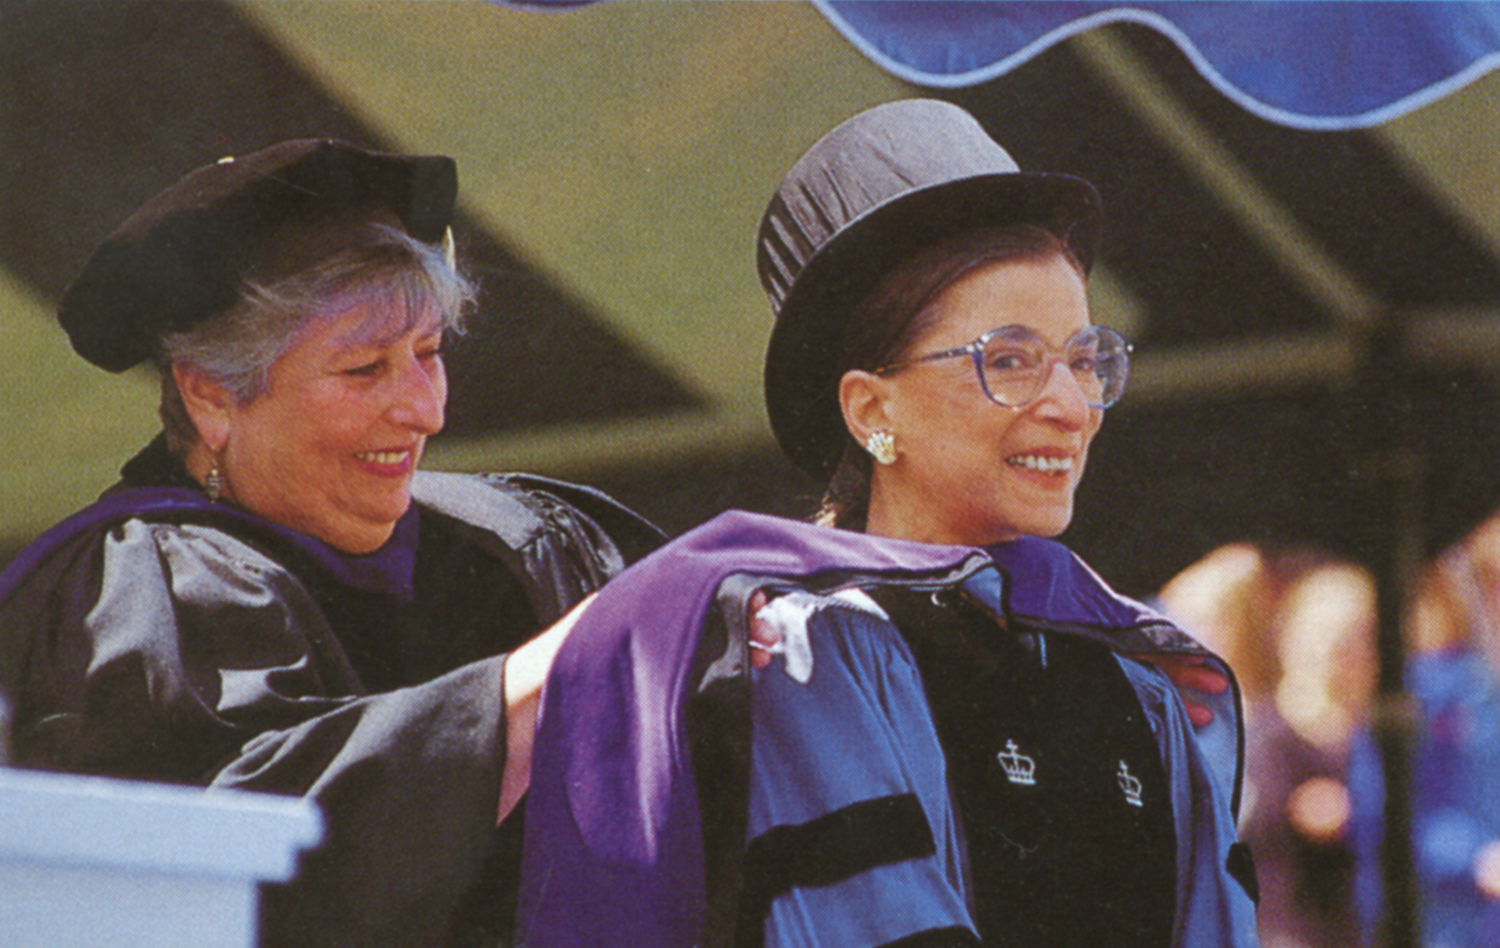 Ruth Bader Ginsburg receiving honorary doctorate from Provost Hannah Goldberg